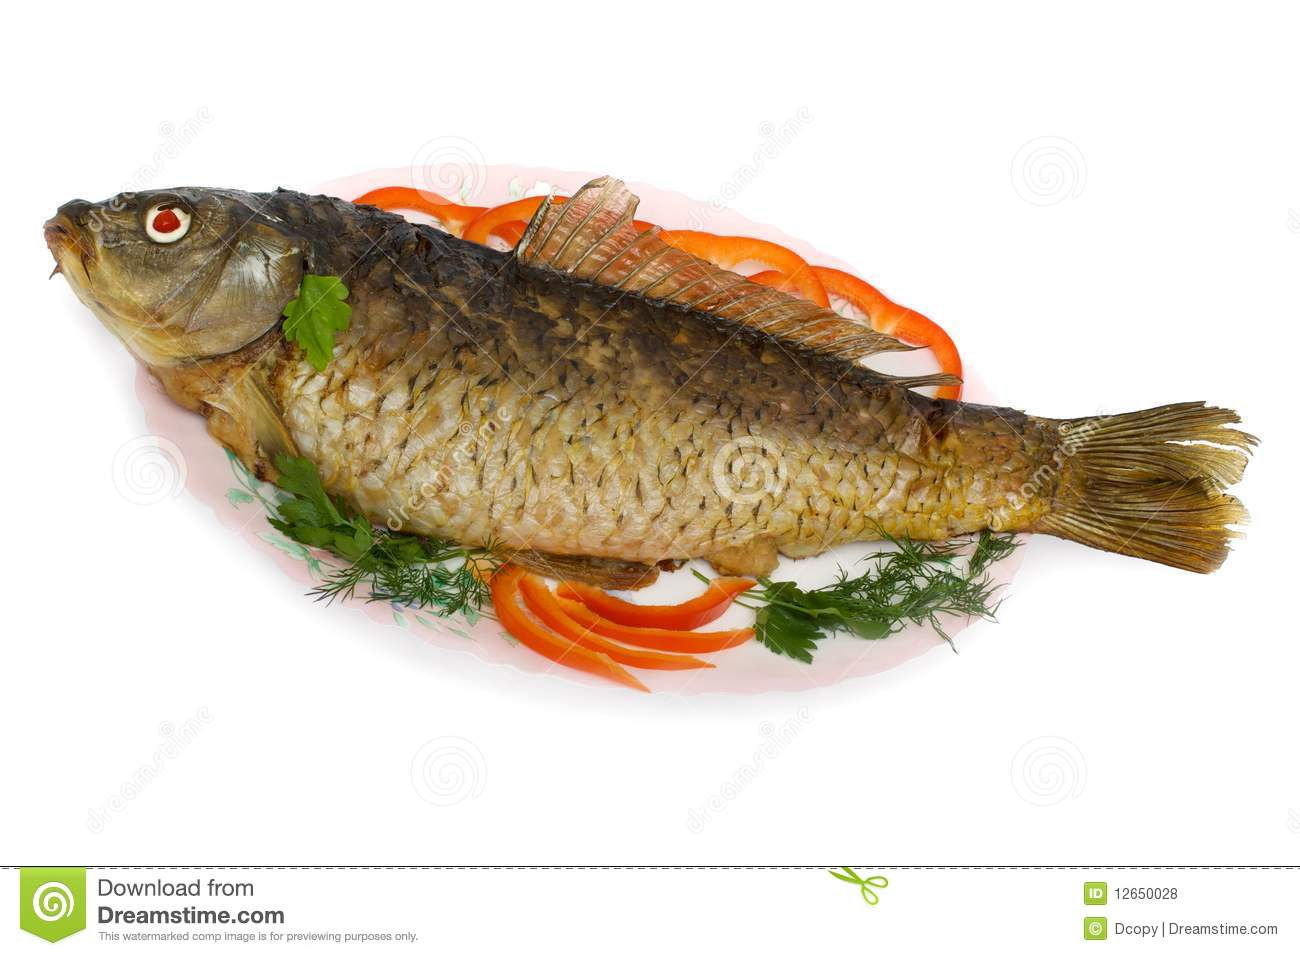 Fish, carp stuffed with minced fish and vegetables